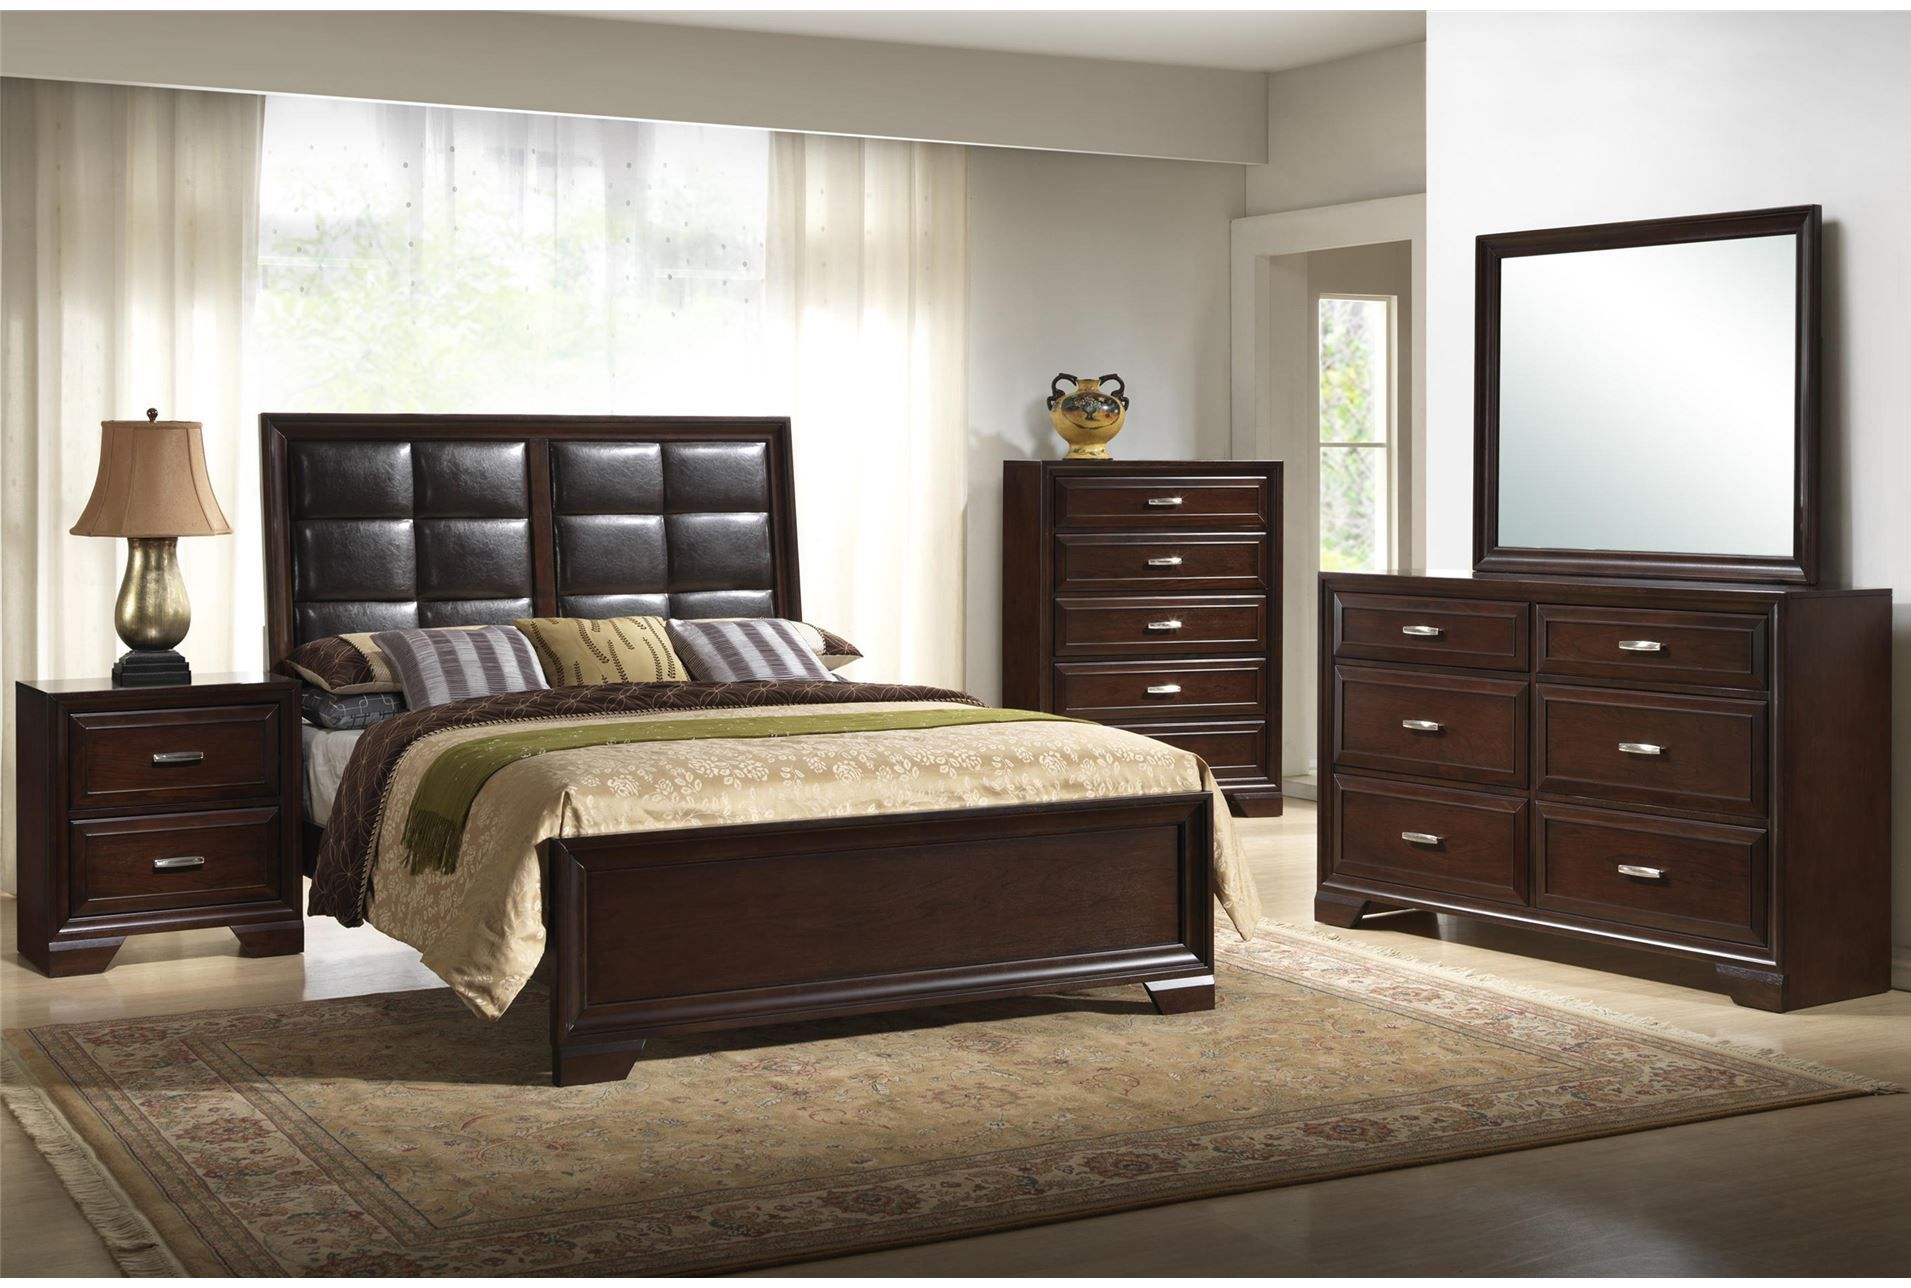 Mimosa Cal King Panel Bed | Master Bedroom Inspirations | Pinterest